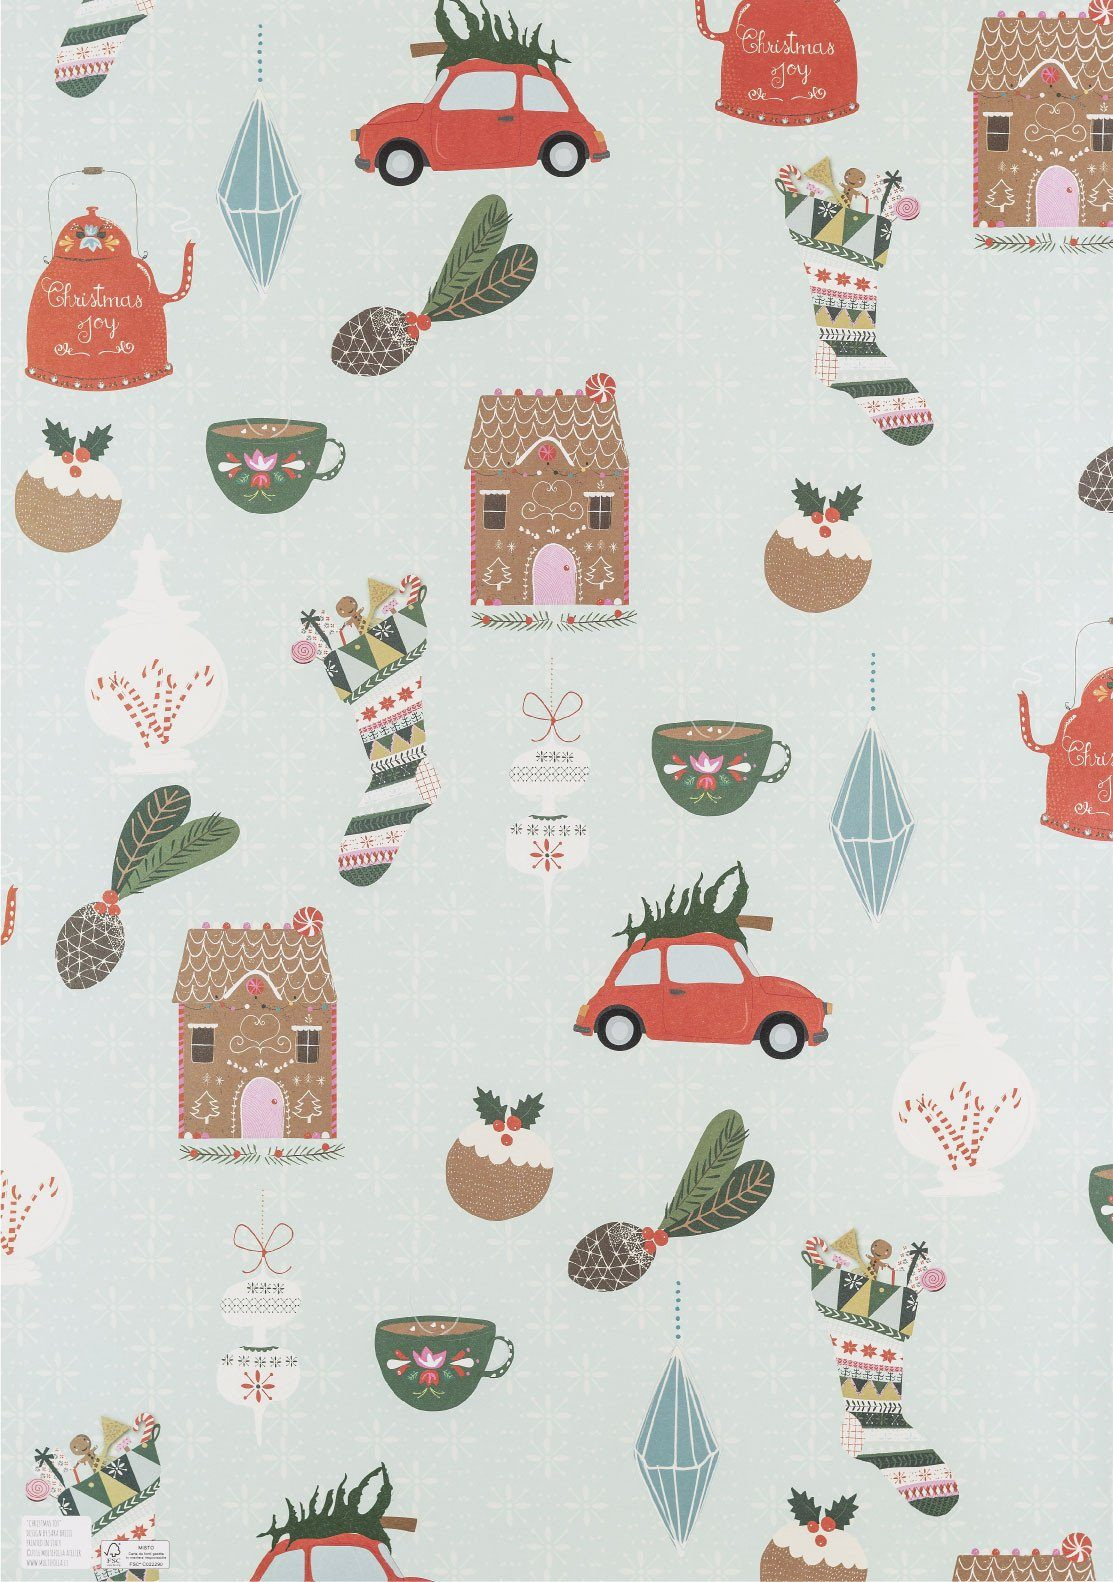 Christmas Joy Wrapping Paper - Wrapping Papers - MULTIFOLIA ATELIER di Rita Girola - Naiise